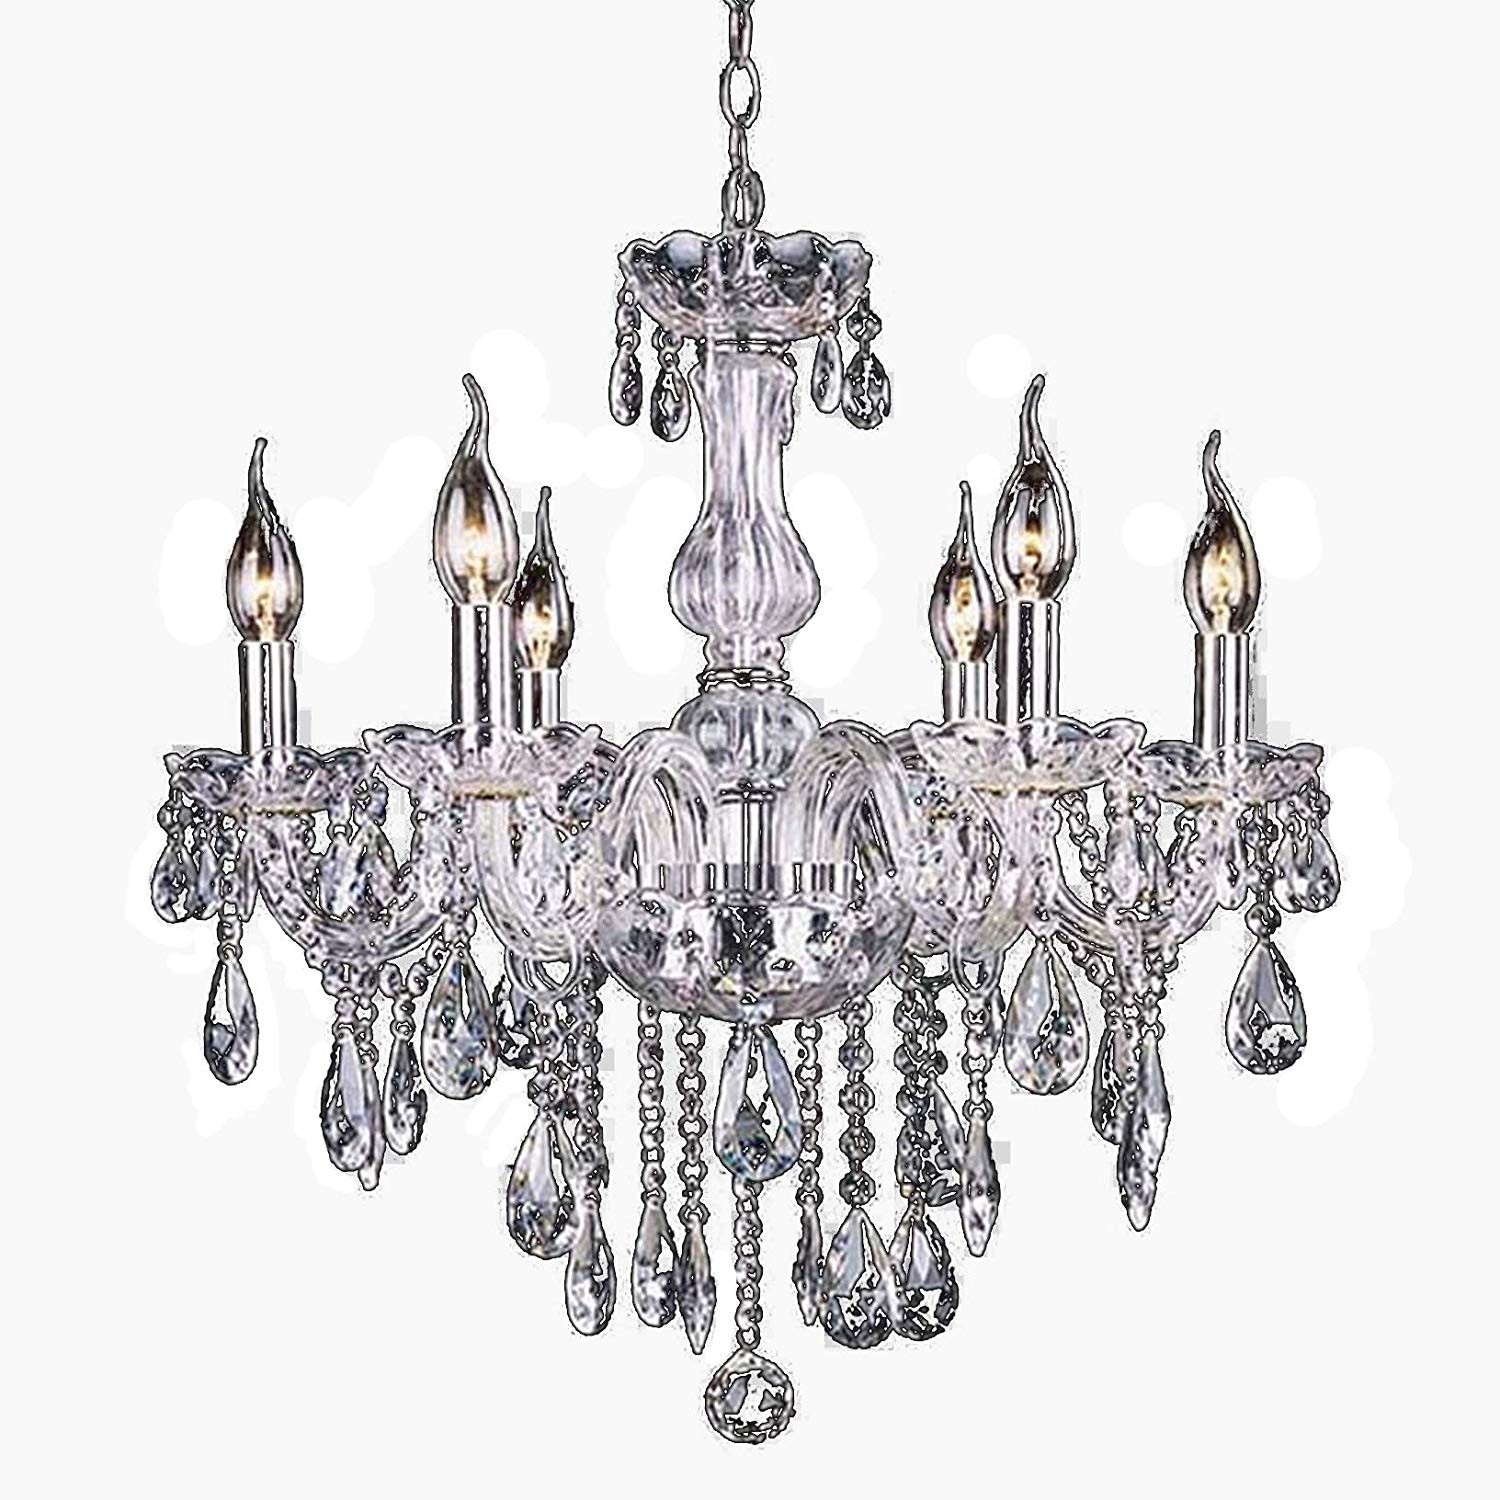 Modern Chandeliers Australia Cheap Crystal Chandeliers Australia Find Crystal Chandeliers